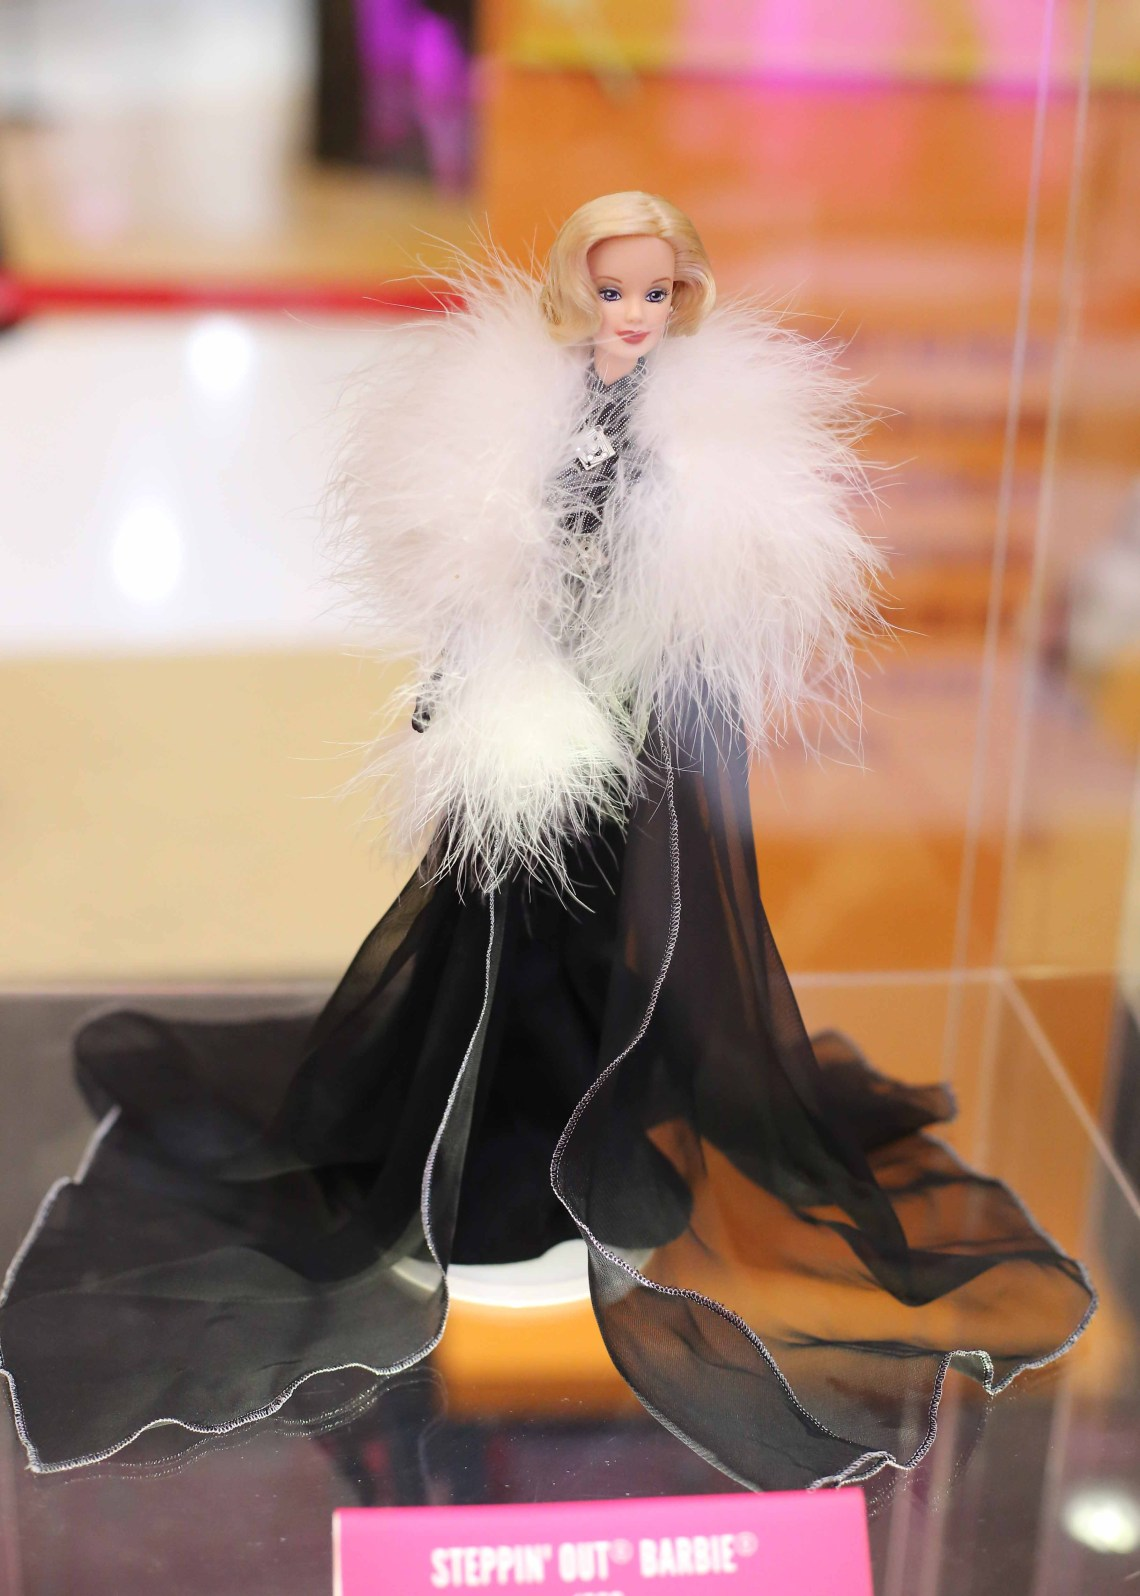 BARBIE_ World of Endless Possibilities Exhibition 11_smartdory 2016